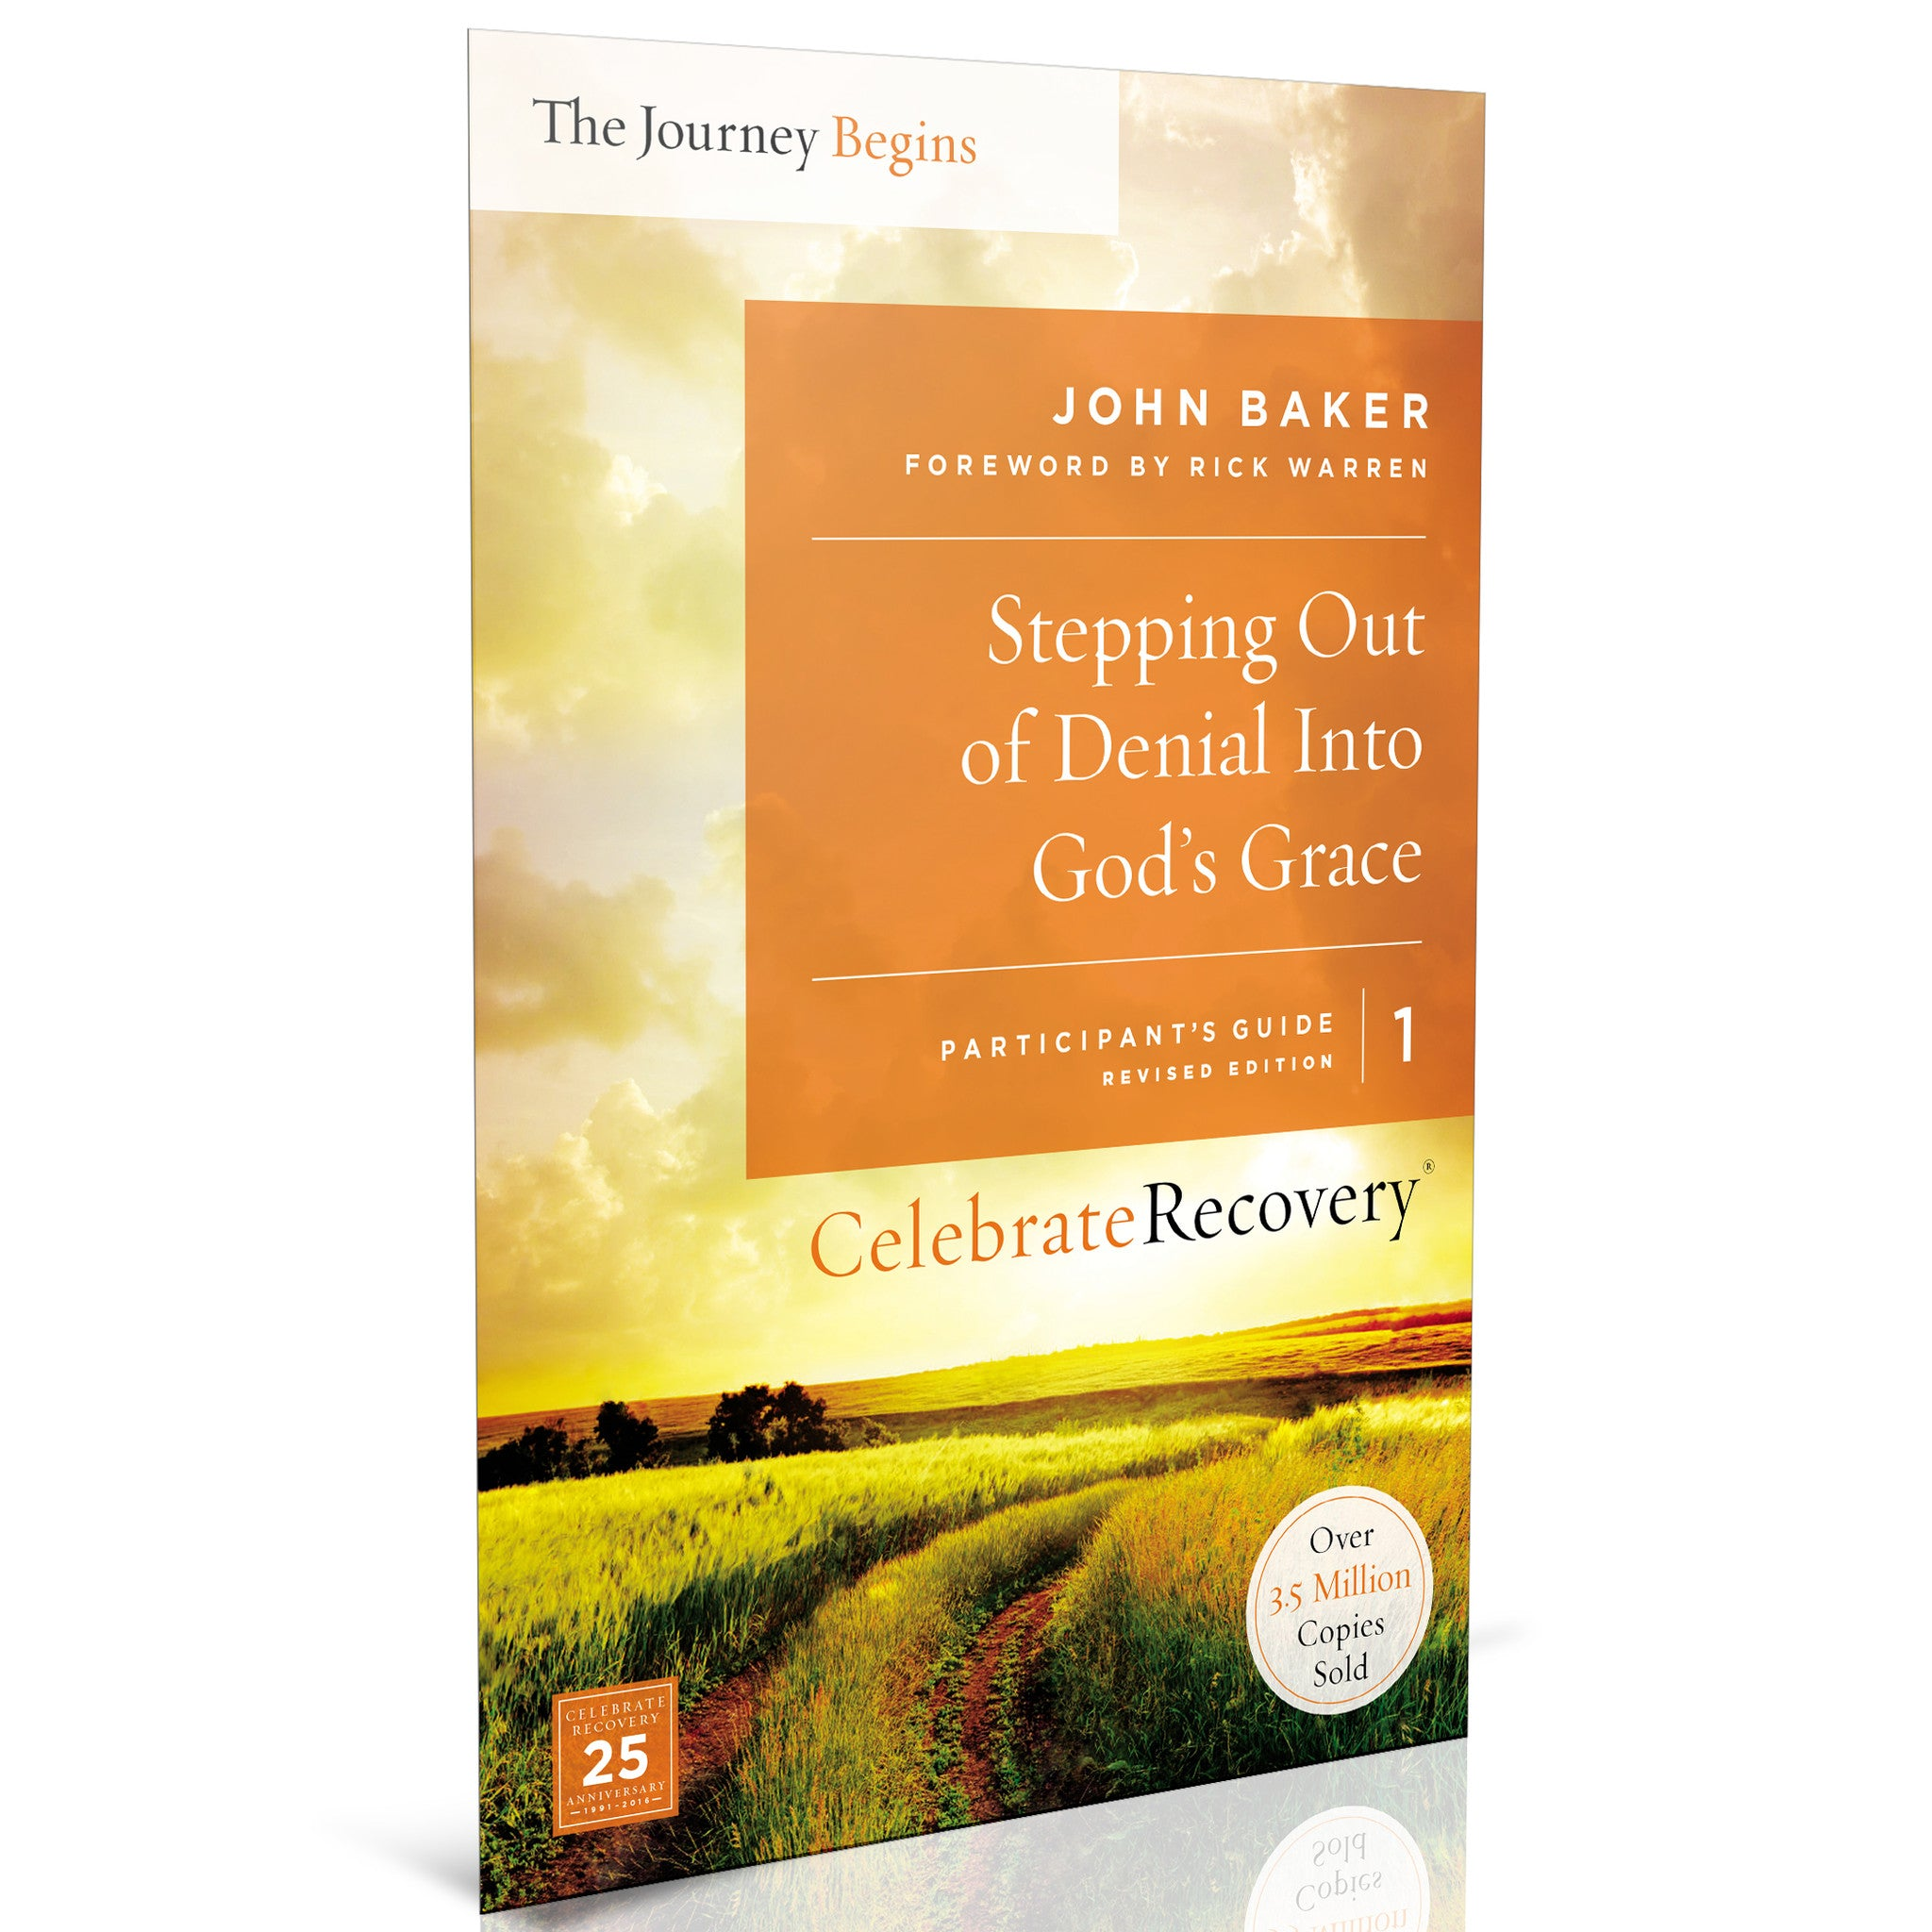 The Journey Begins Participant's Guide 1: Stepping Out of Denial Into God's Grace